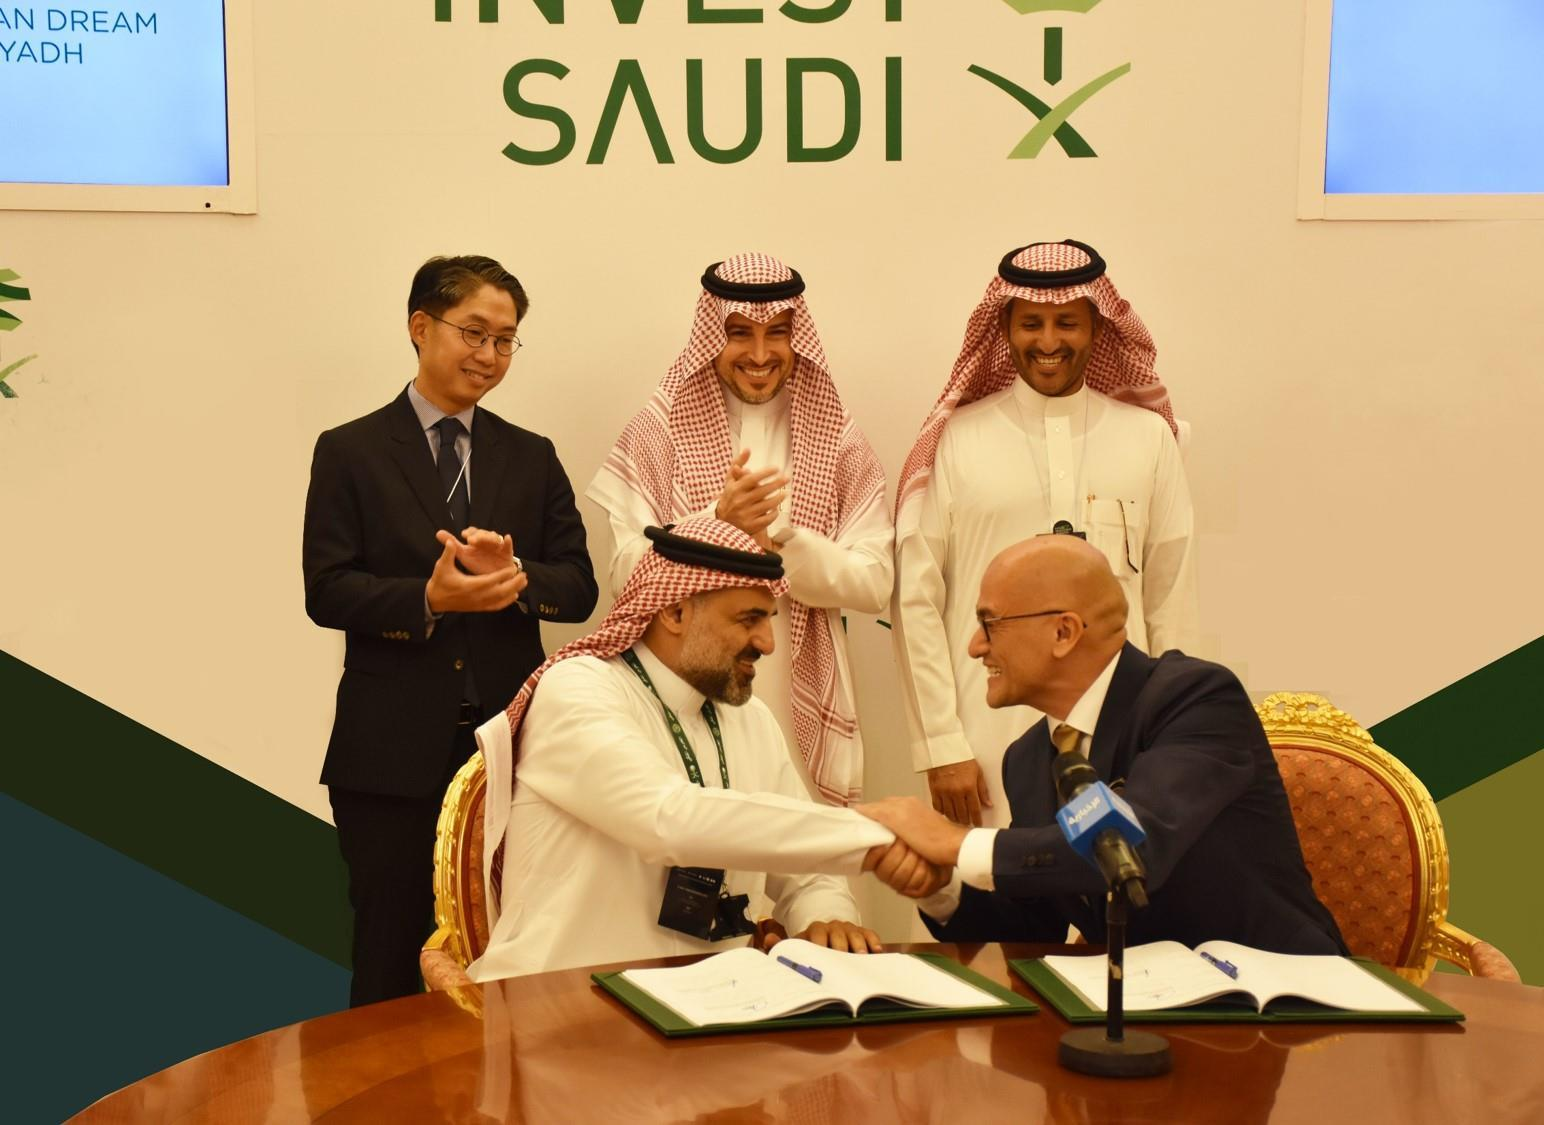 Saudi S Akaria And Triple Five Partner To Develop 5bn Mall In Riyadh News Real Assets